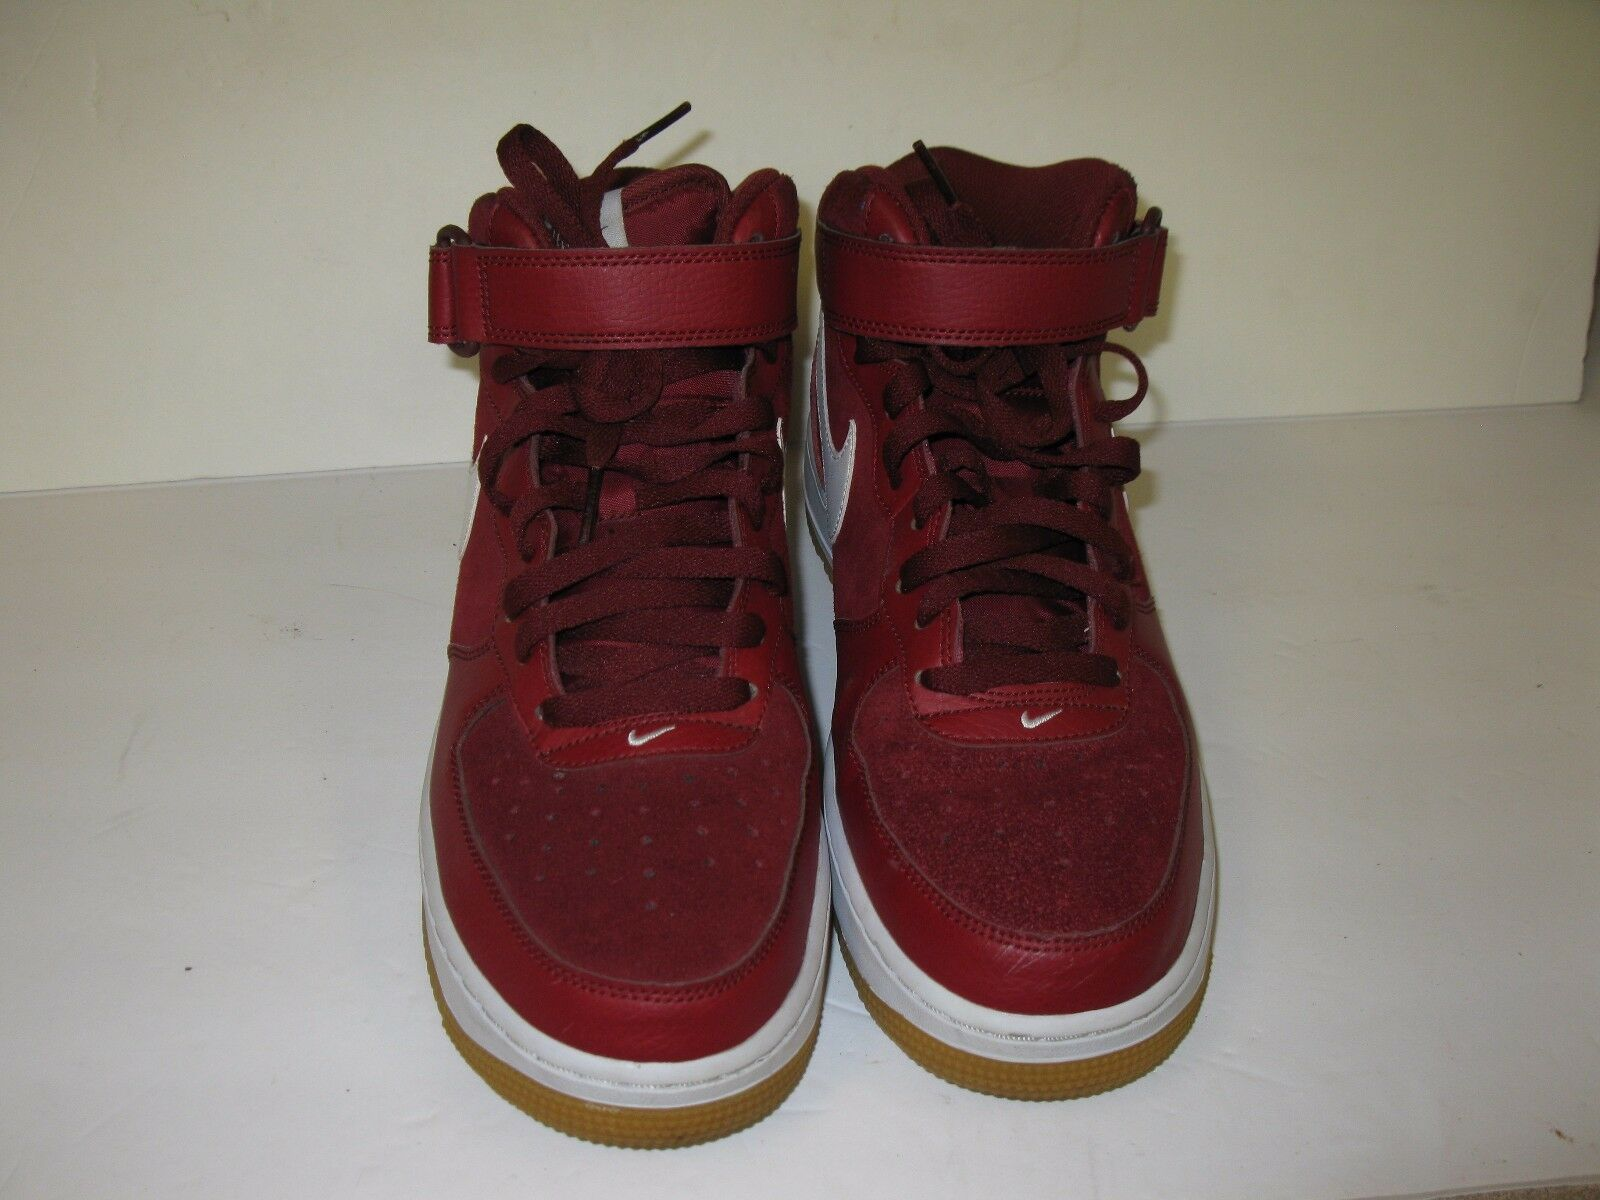 NIKE AIR FORCE 1 MID 07 MENS SNEAKERS 315123 608 WINE SIZE MENS 8.5